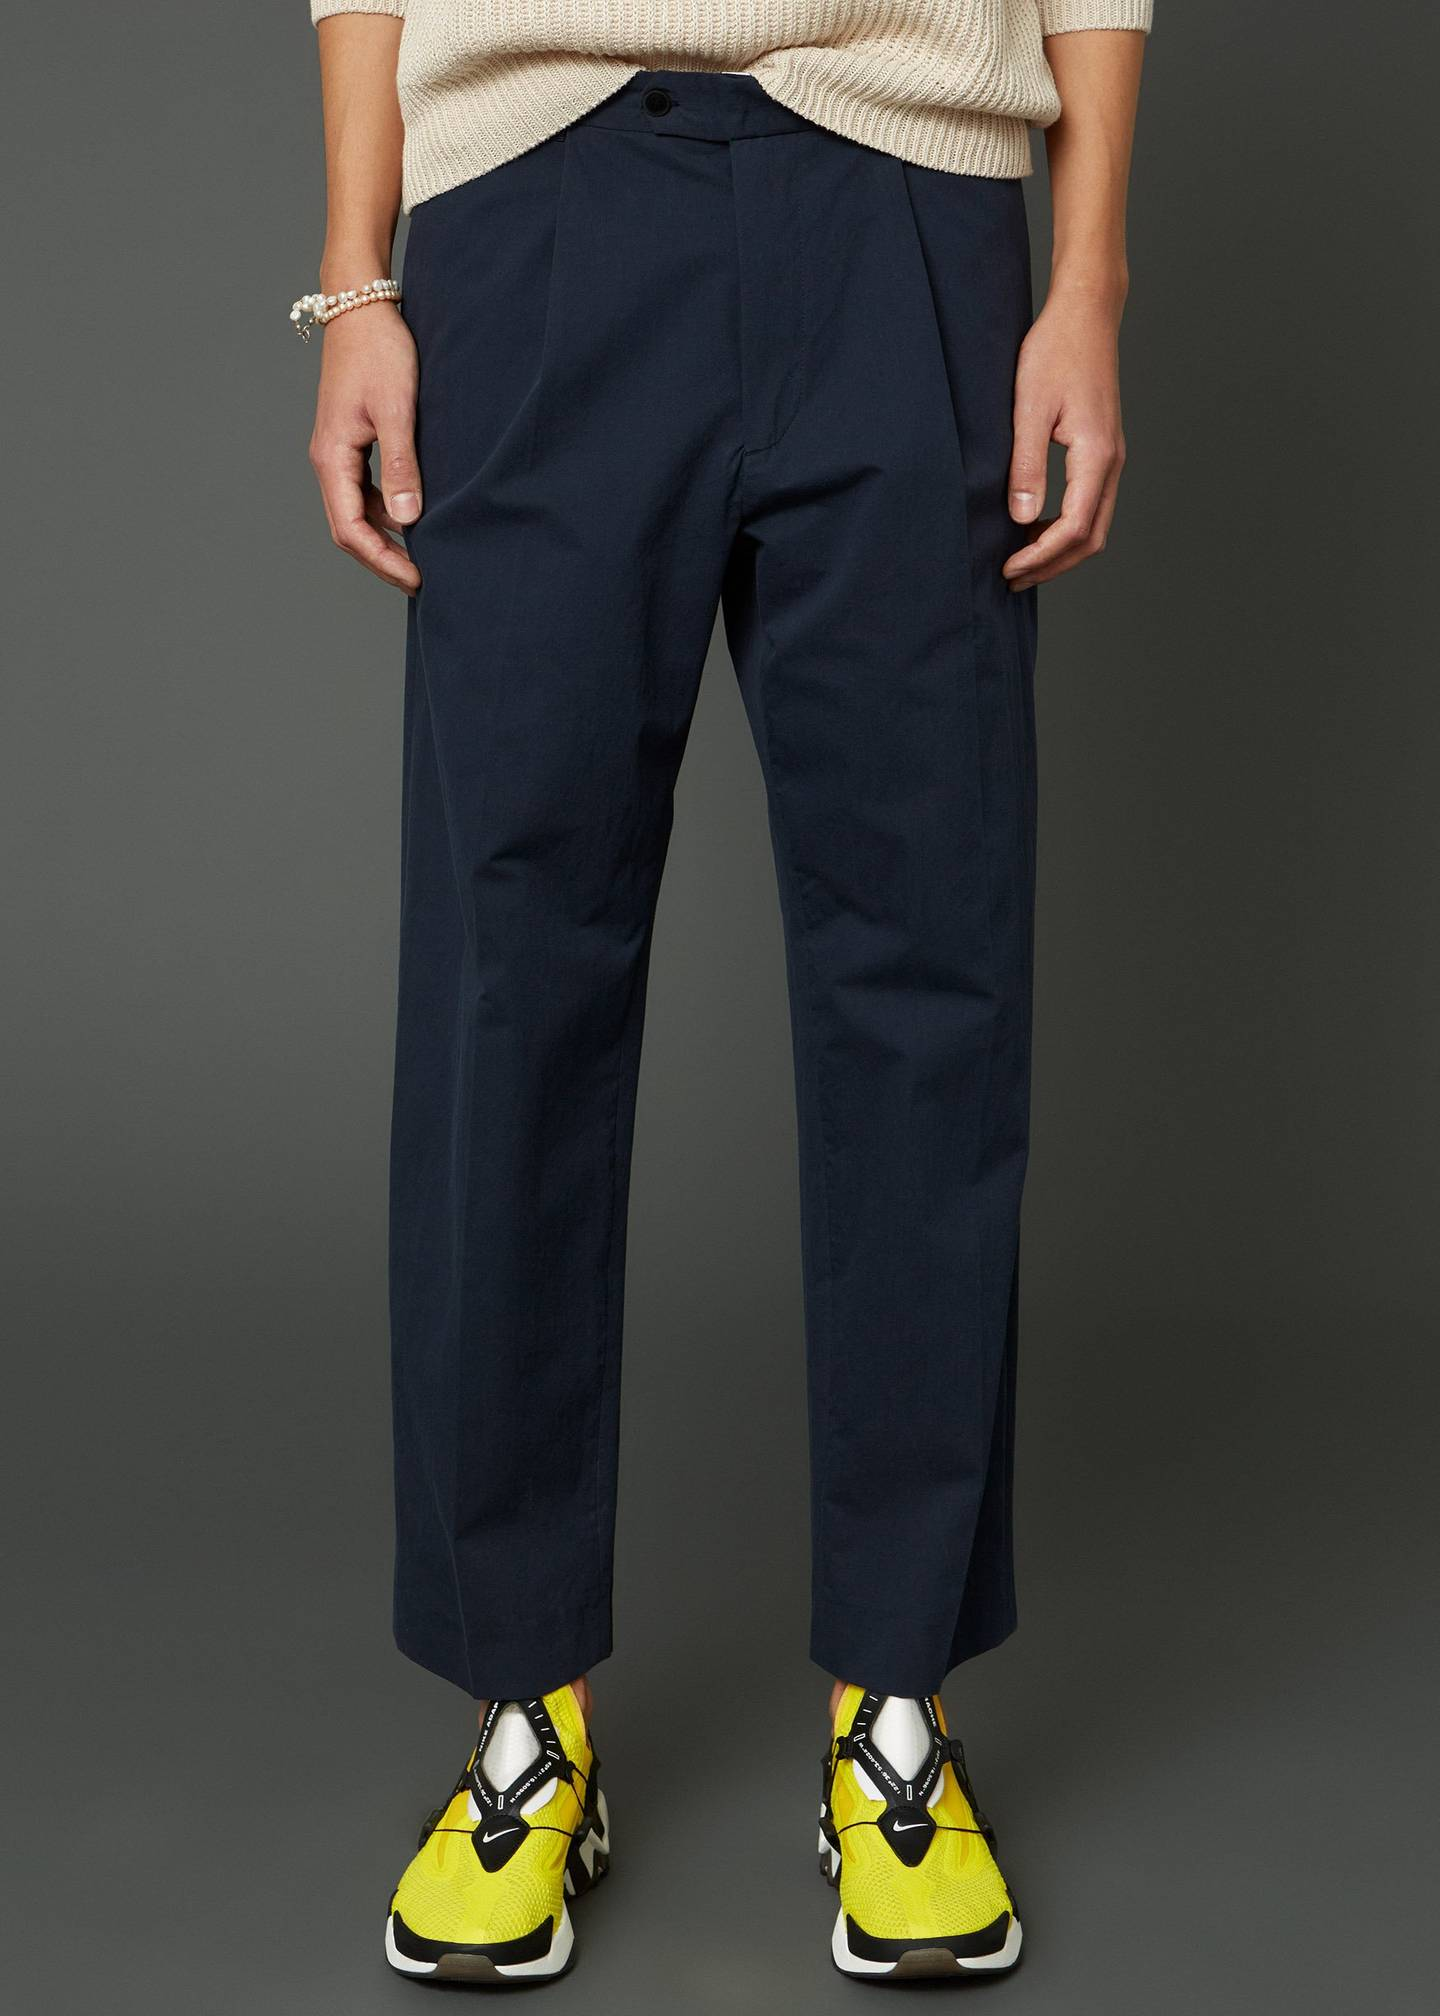 Hope Take Trousers navy